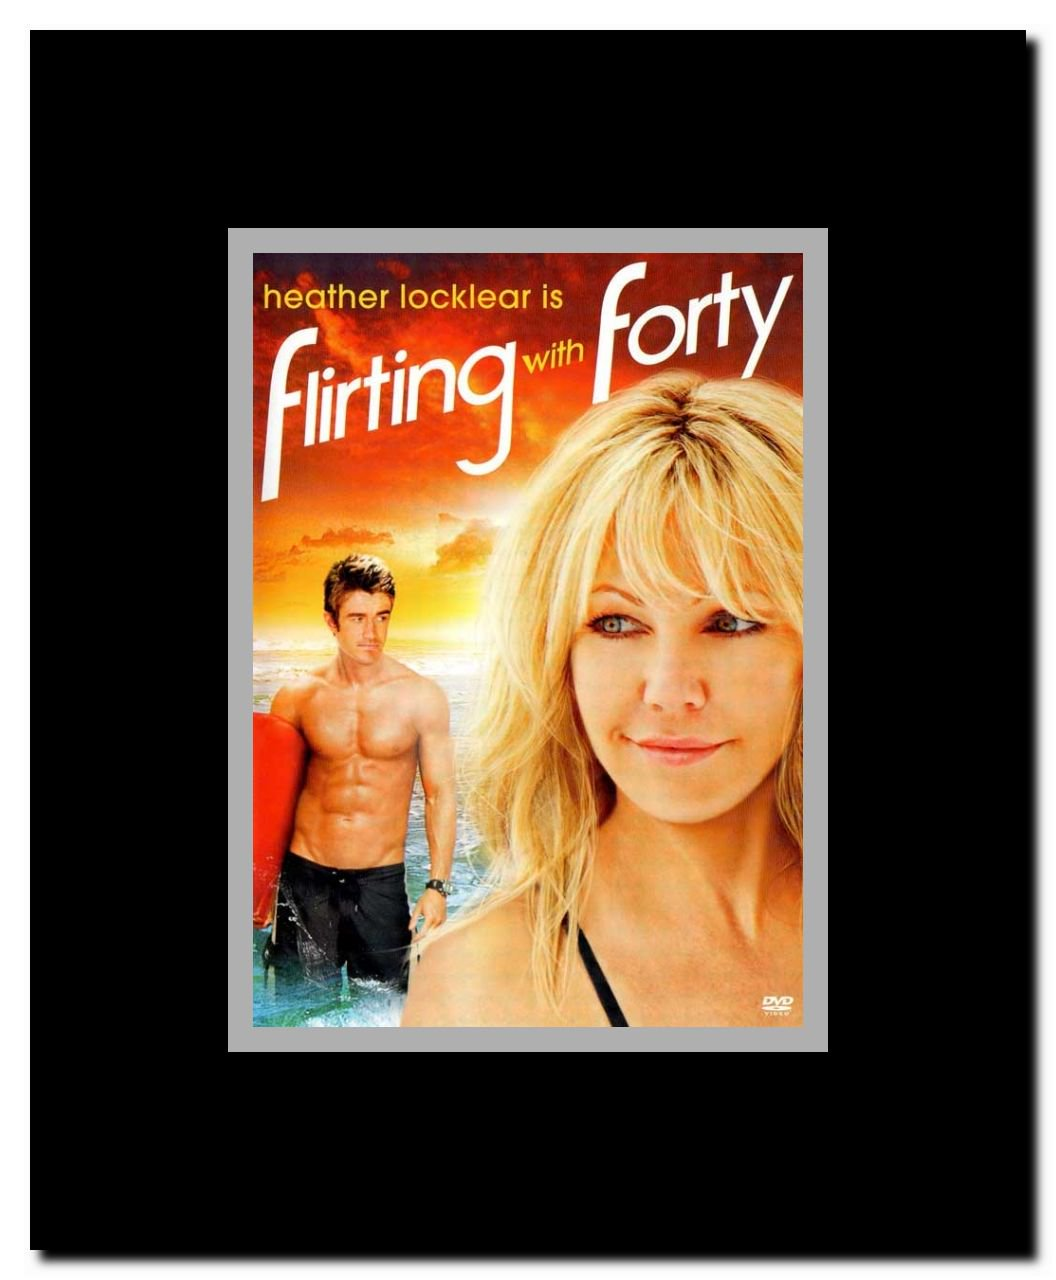 flirting with forty dvd cover full album video